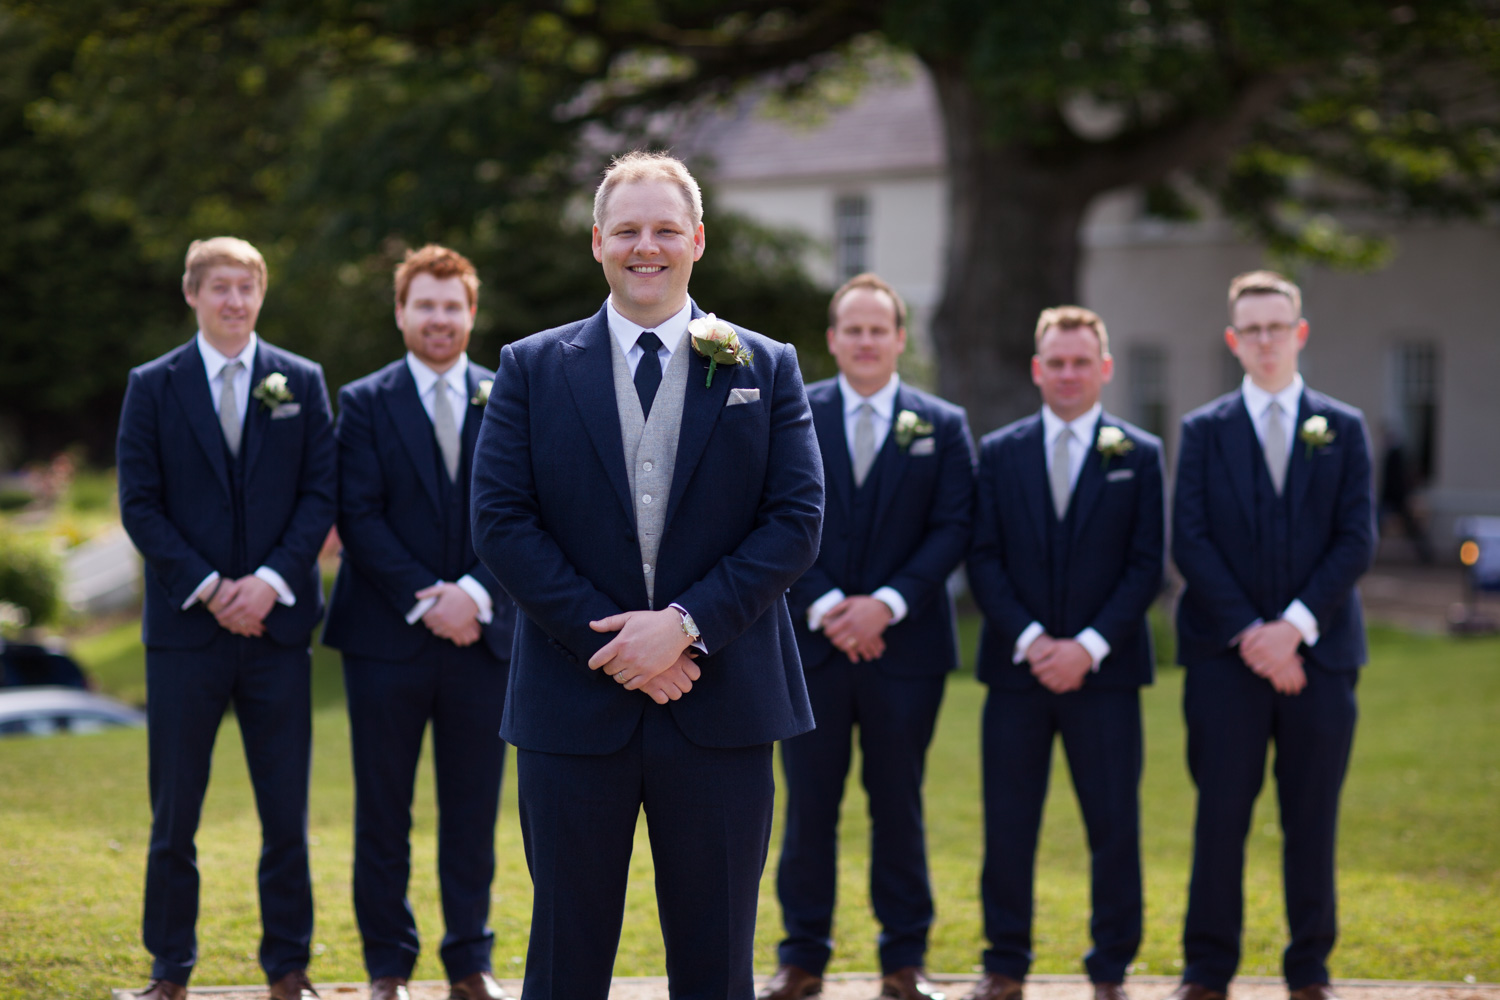 Mark_Barnes_Northern_Ireland_wedding_photographer_Kilmore_House_Wedding_photography_Kilmore_House_wedding_photographer-45.jpg